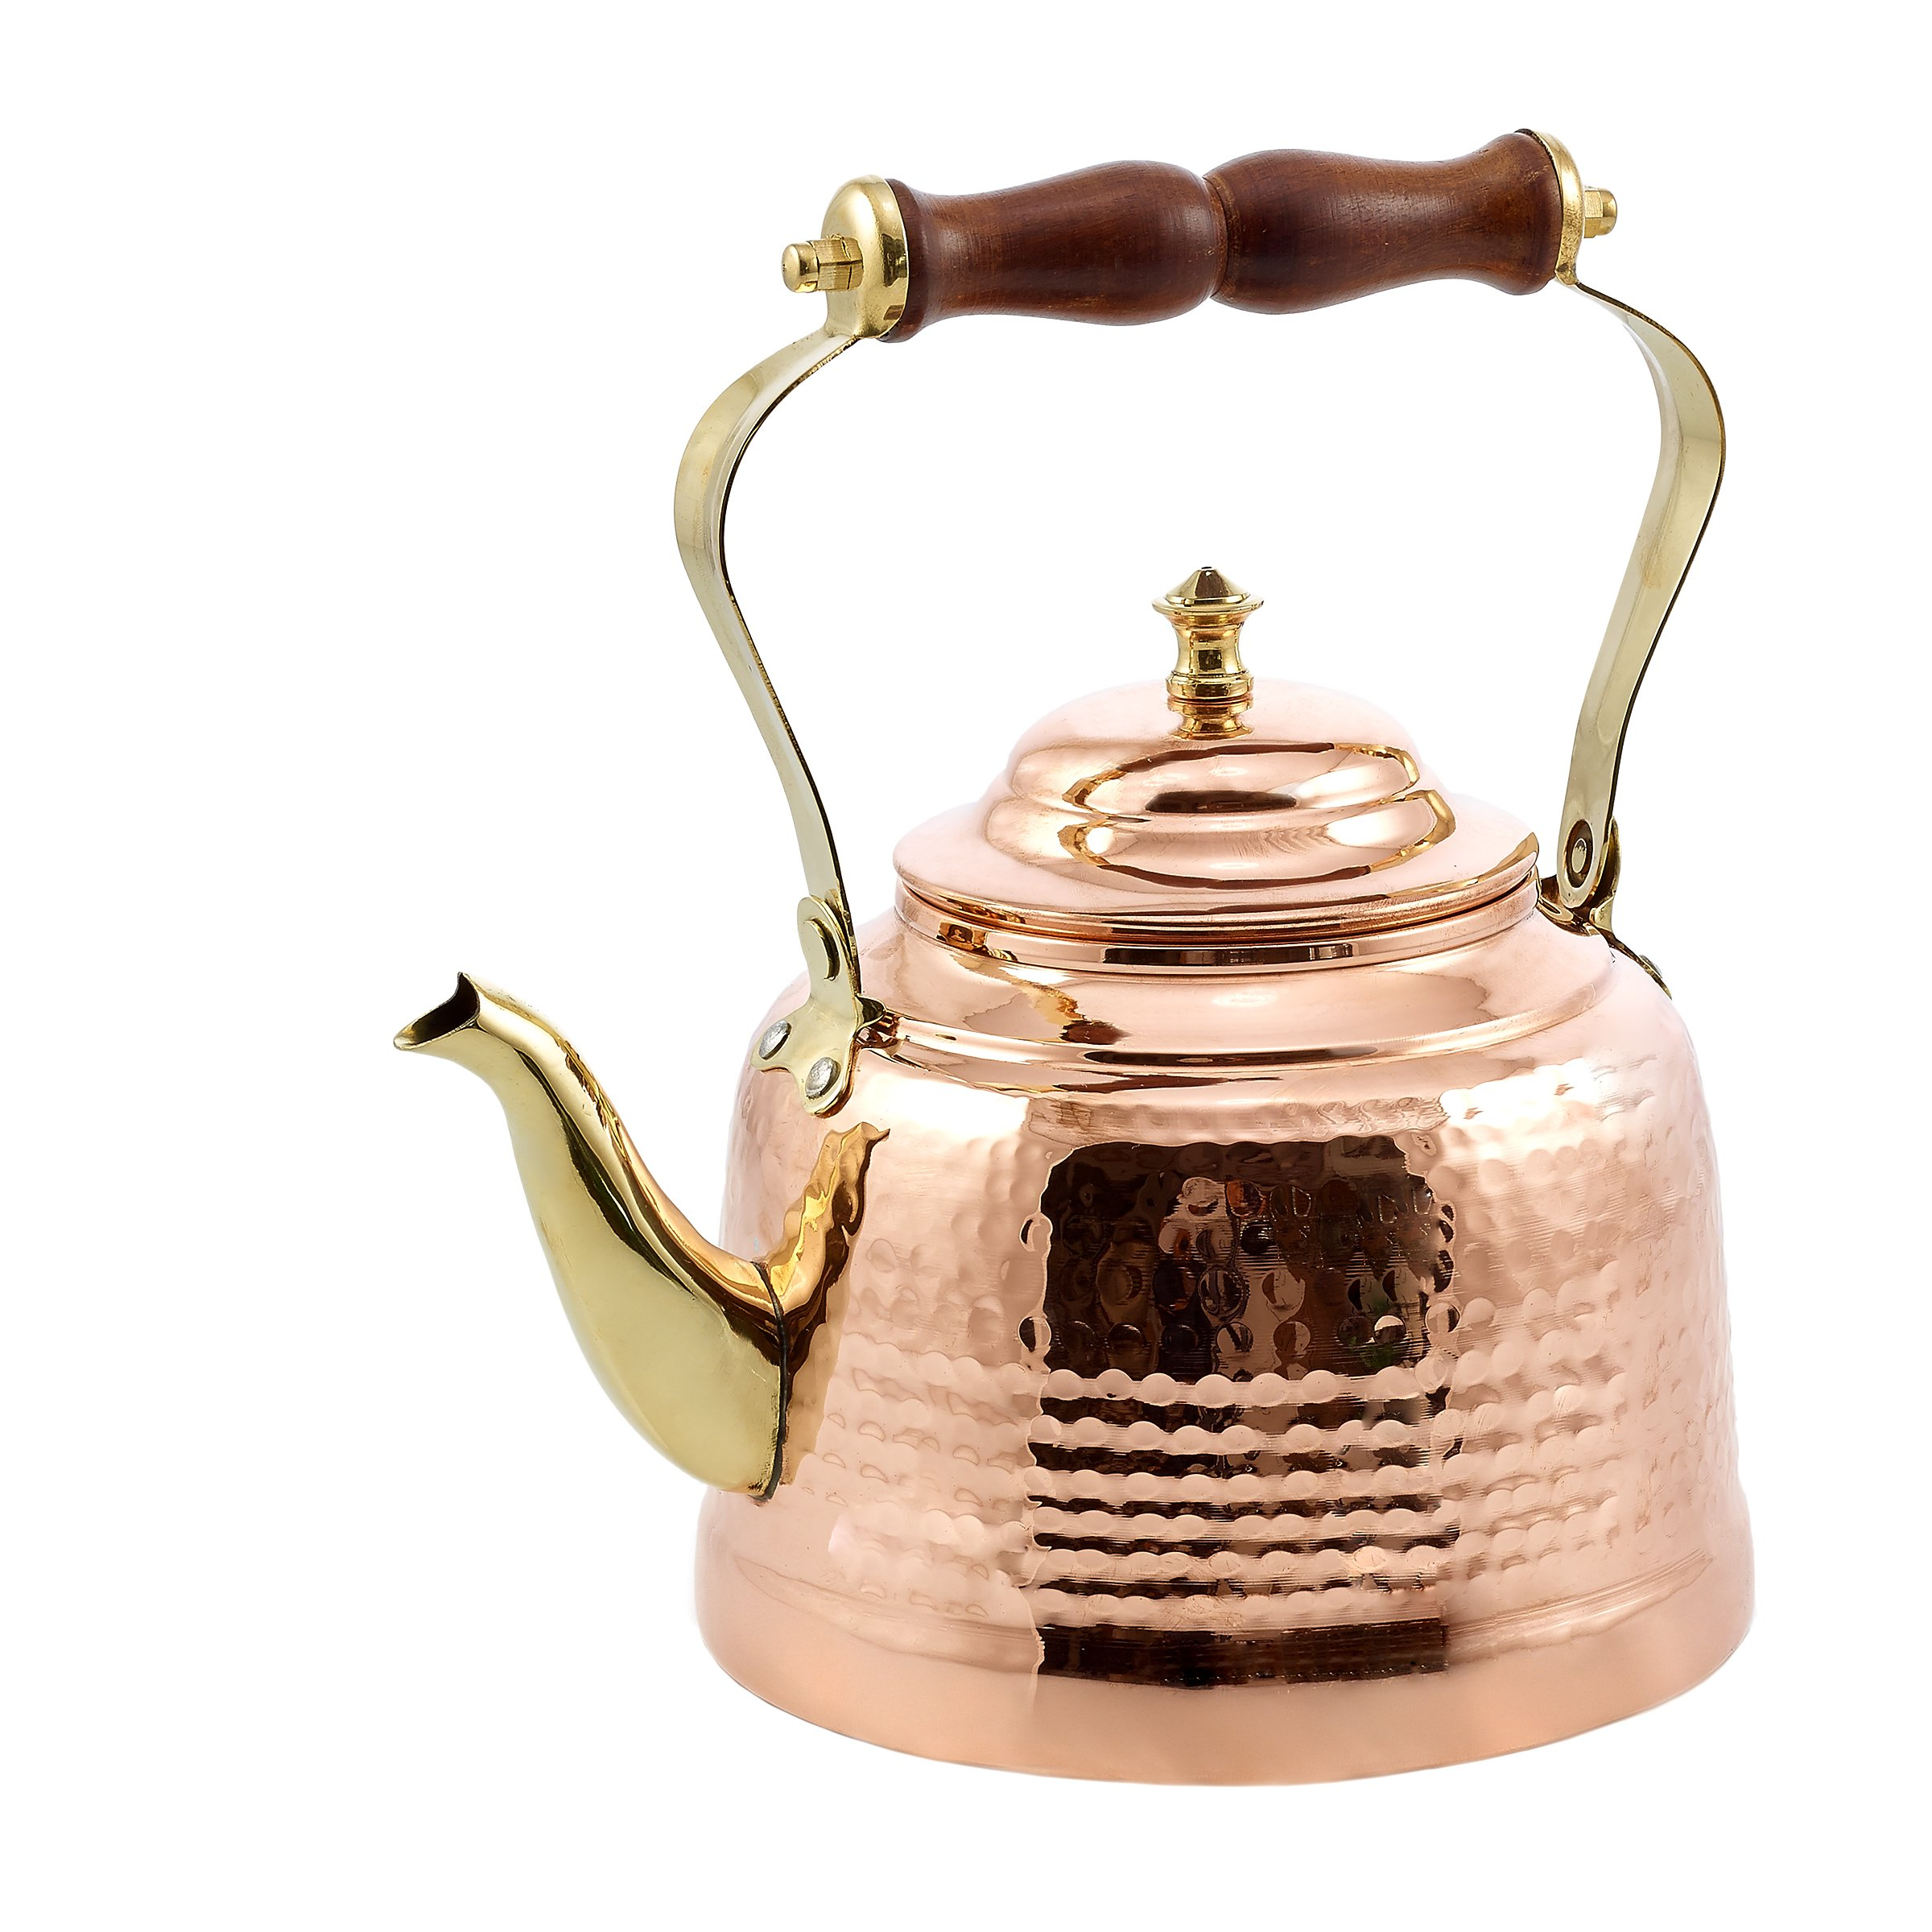 Old Dutch Hammered Copper Tea Kettle with Brass Spout and Wooden Handle, 2 qt. (1869)